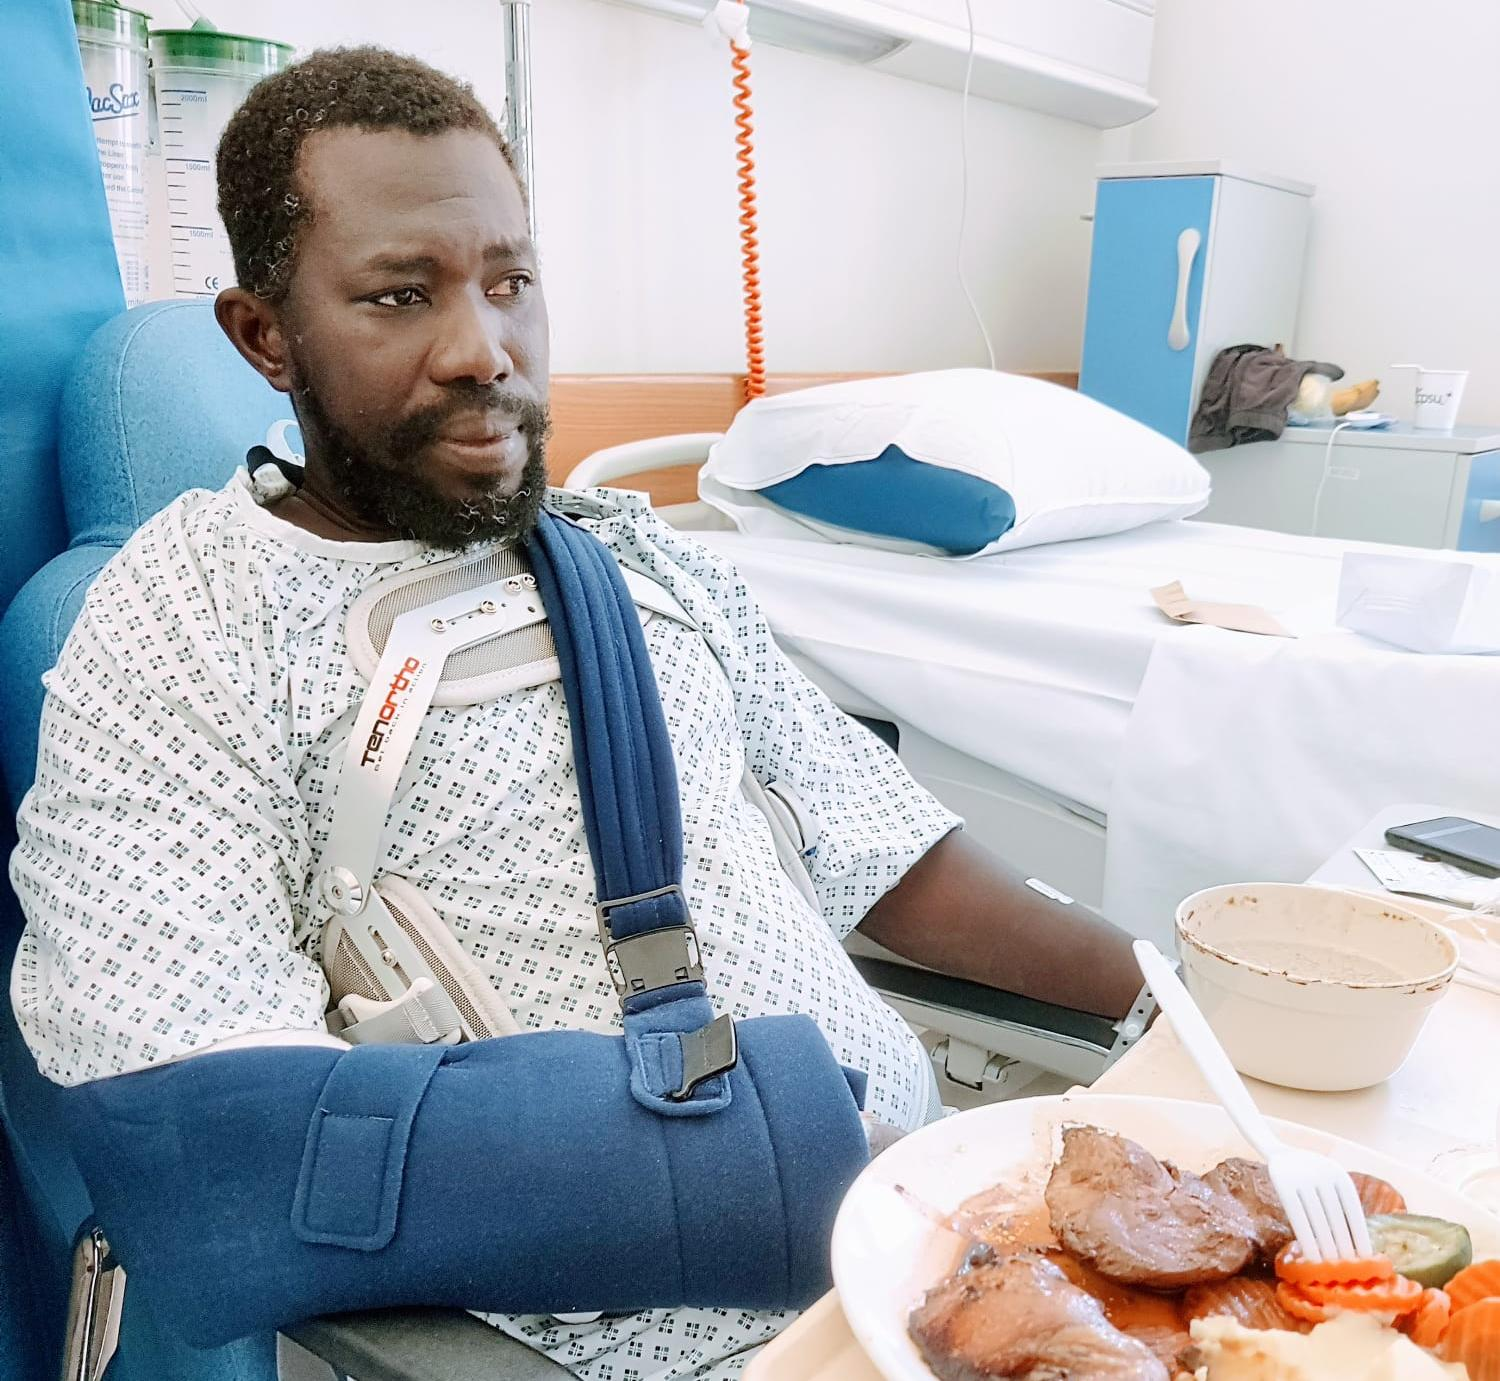 Jaiteh Lamin suffered serious back and arm injuries in the fall. Photo: Caroline Galea